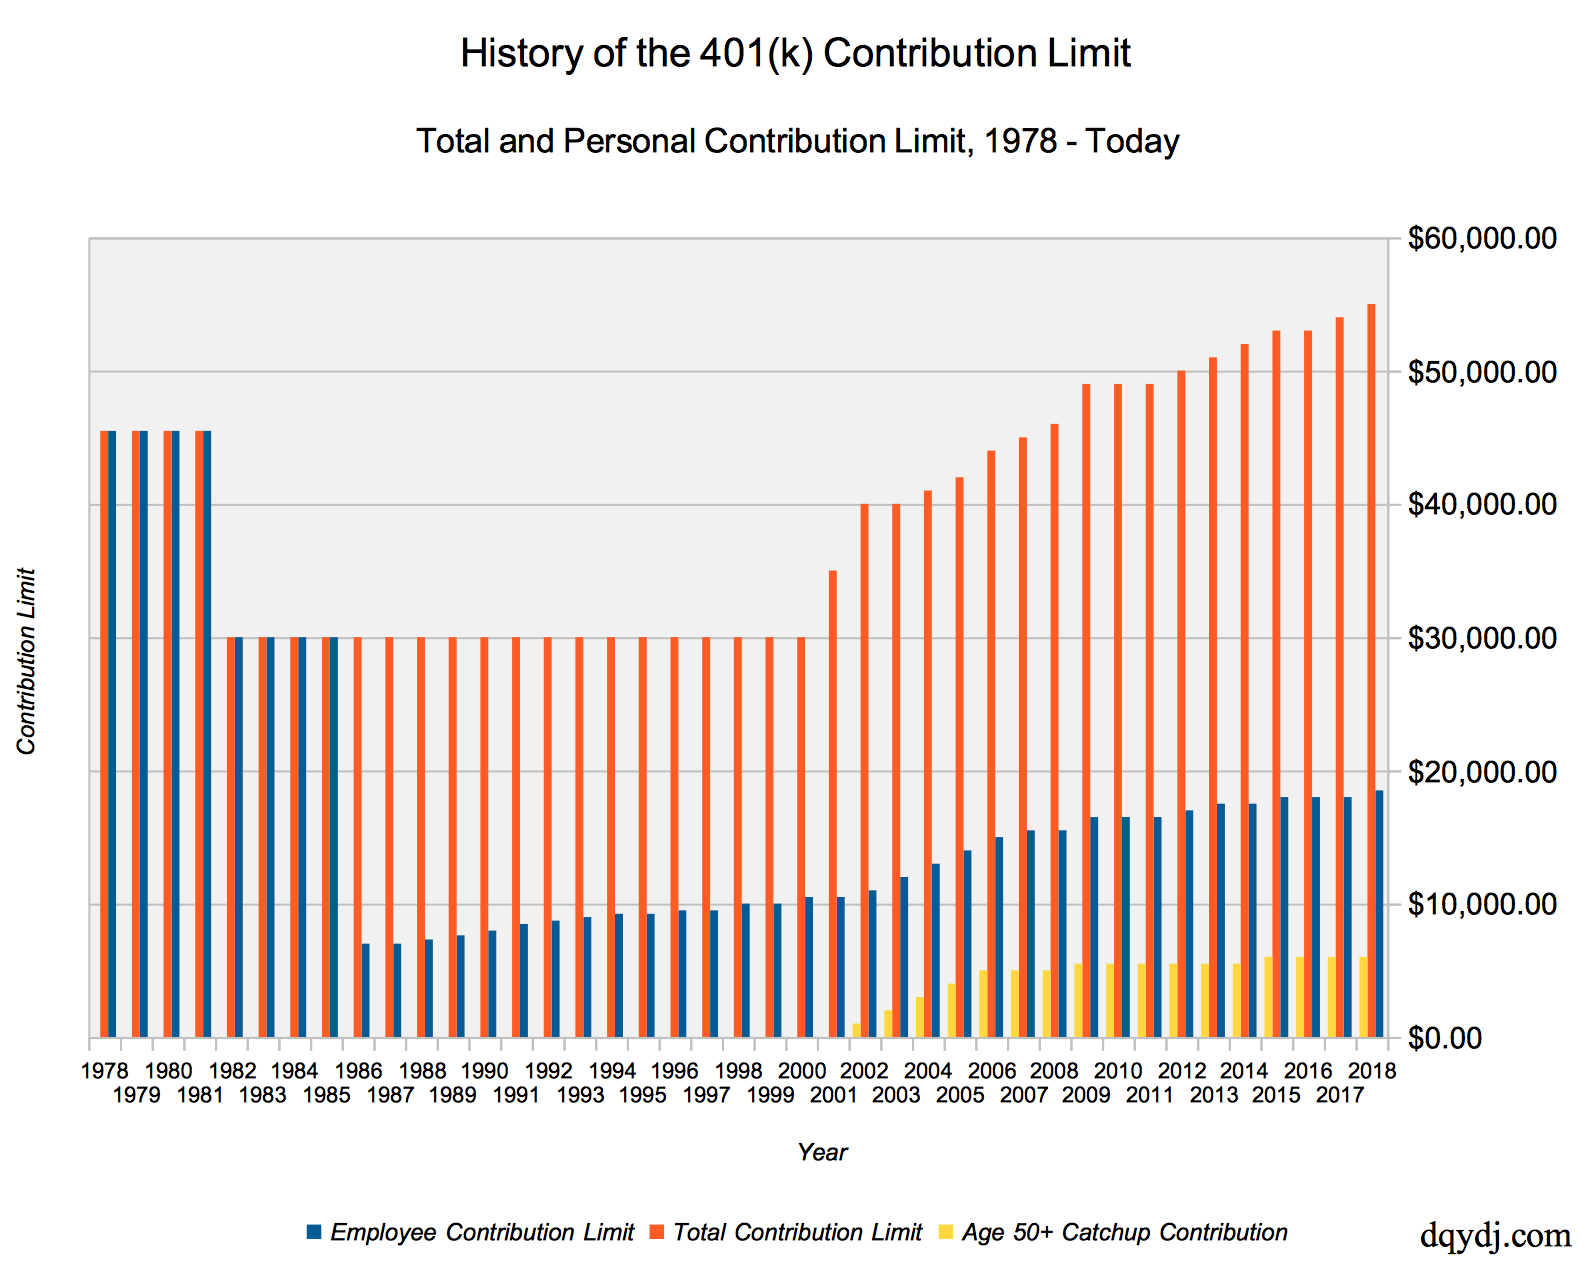 401(k) limit history of contributions, 1978 - today.